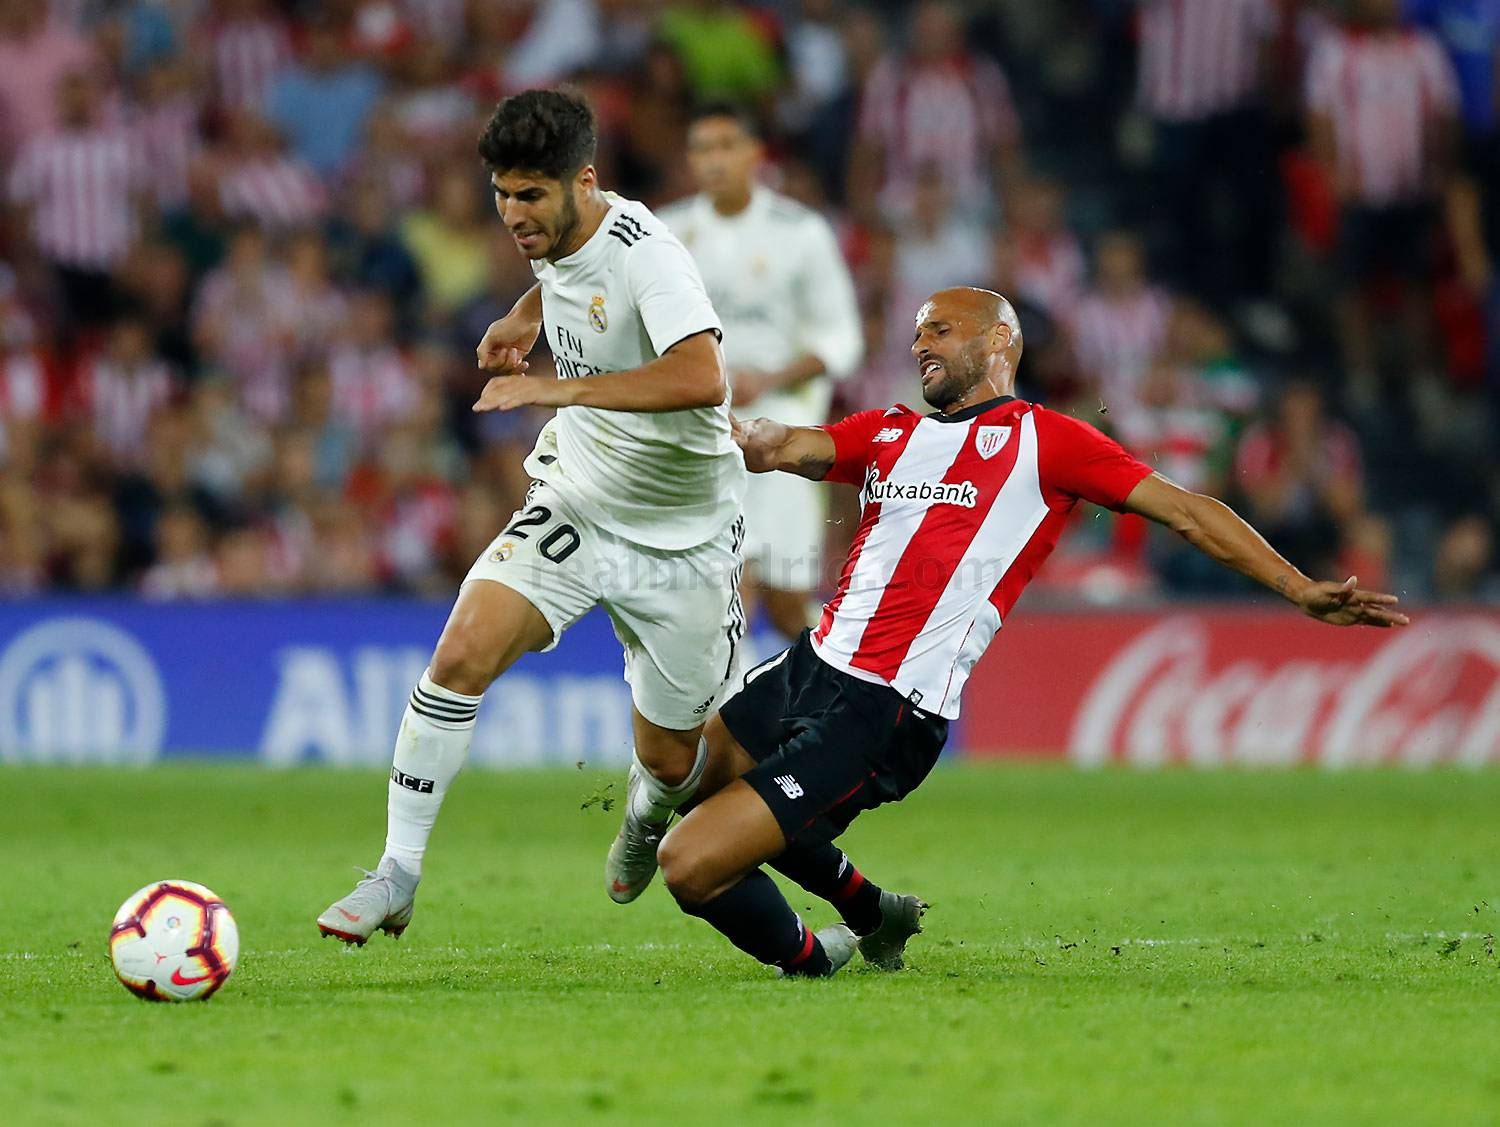 Real Madrid - Athletic Club - Real Madrid - 15-09-2018